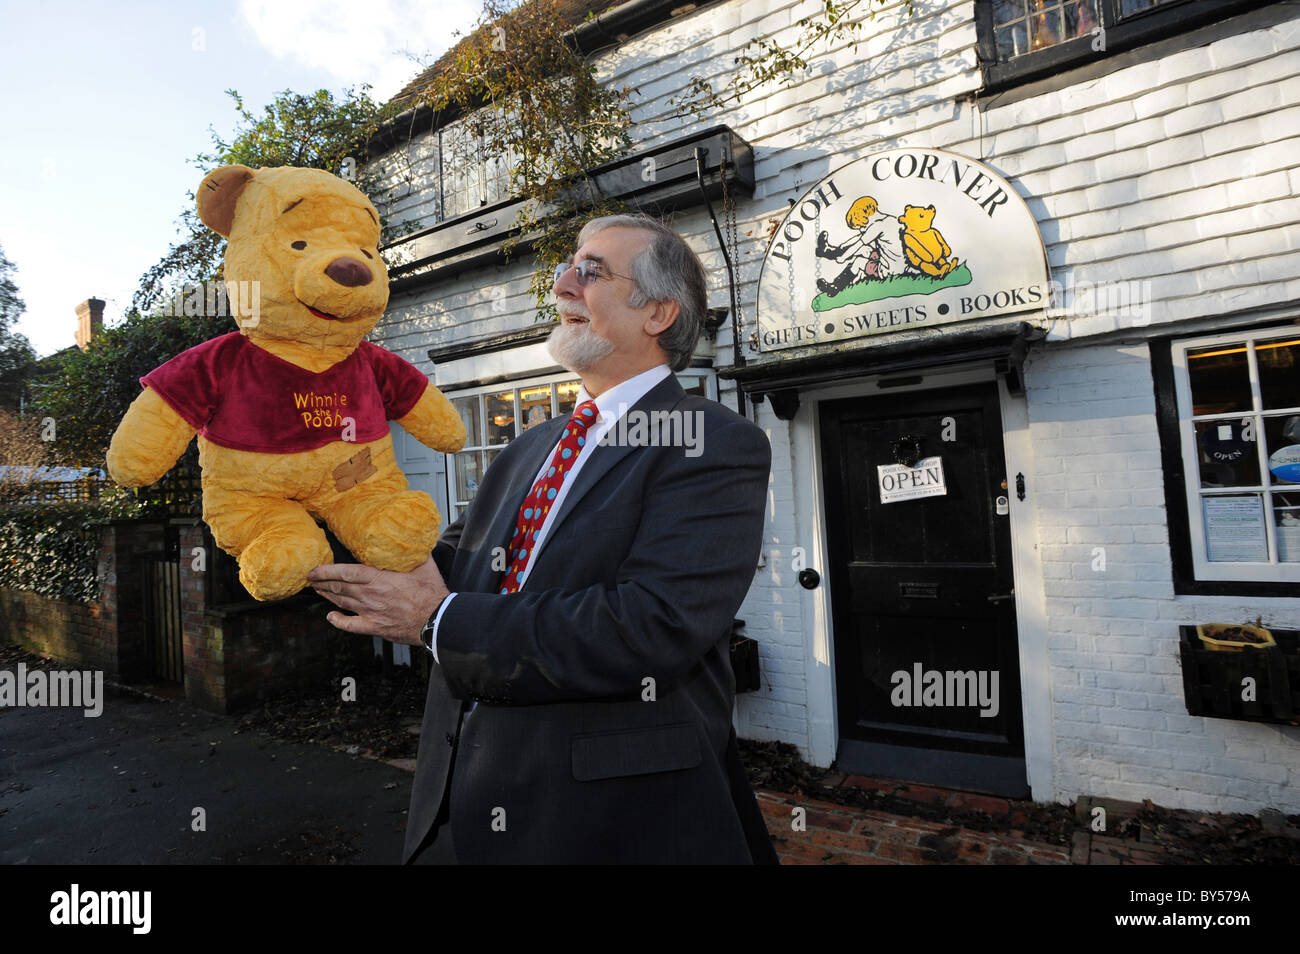 Mike Ridley owner of Pooh Corner a shop in Hartfield selling all kinds of Winnie the Pooh memorabilia - Stock Image